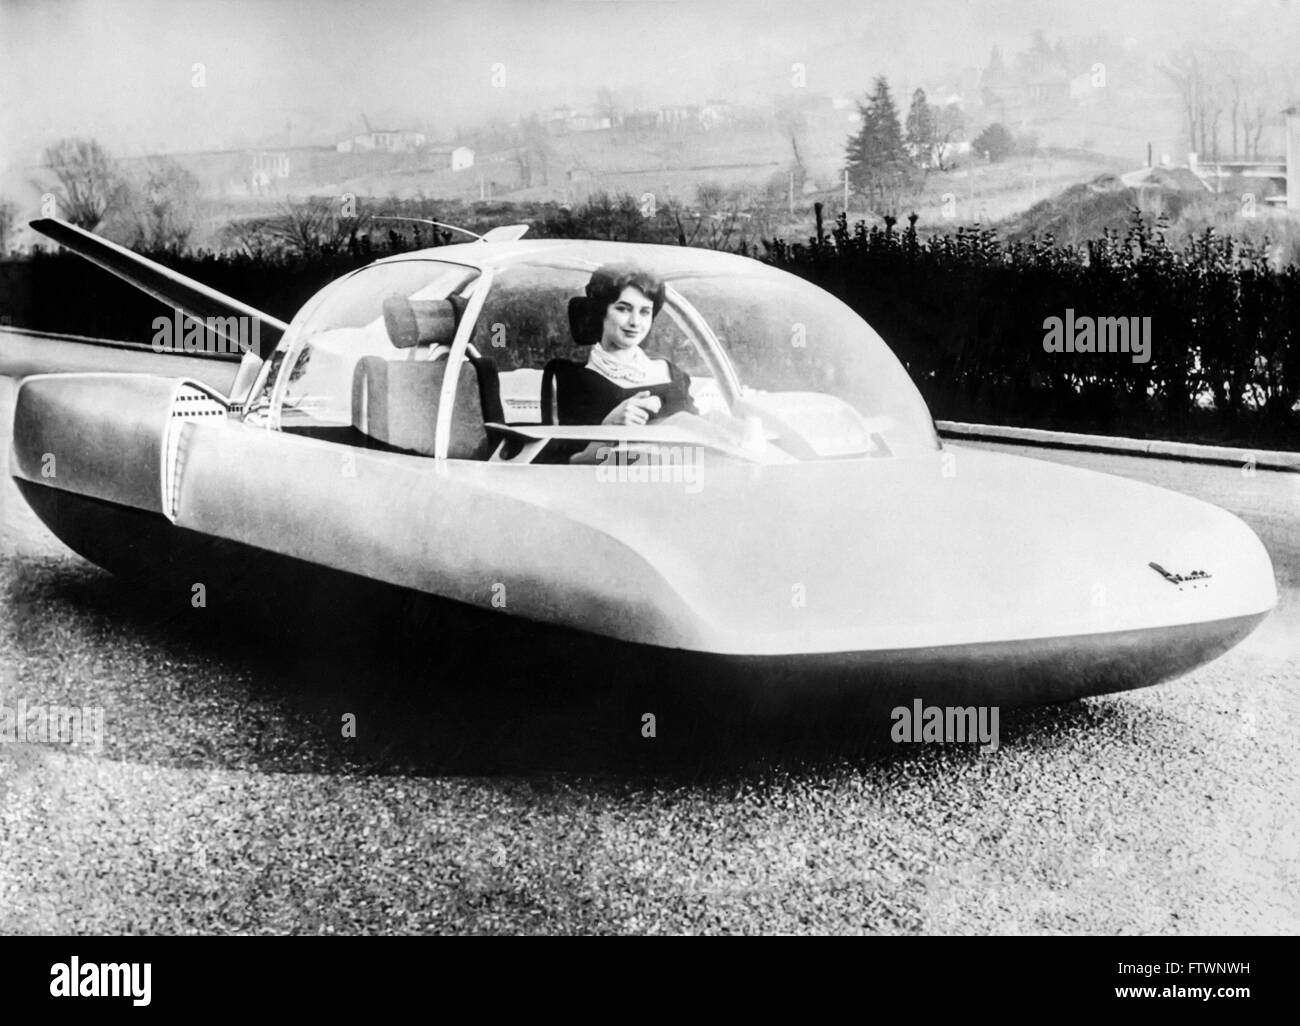 Simca Fulgur was a concept car designed in 1958 by Robert Opron. The car was designed to show what a car might look Stock Photo